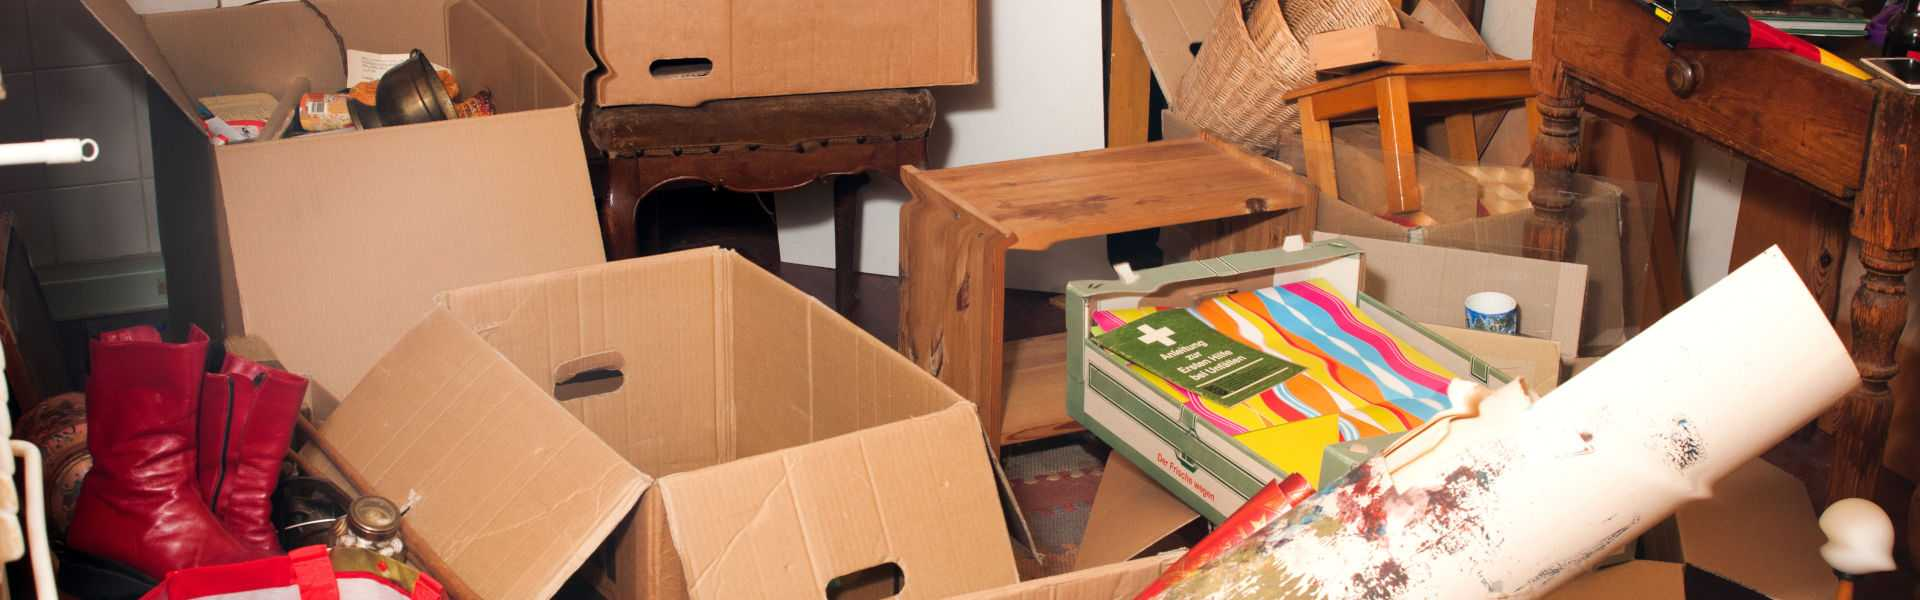 Messy boxes for clearance home